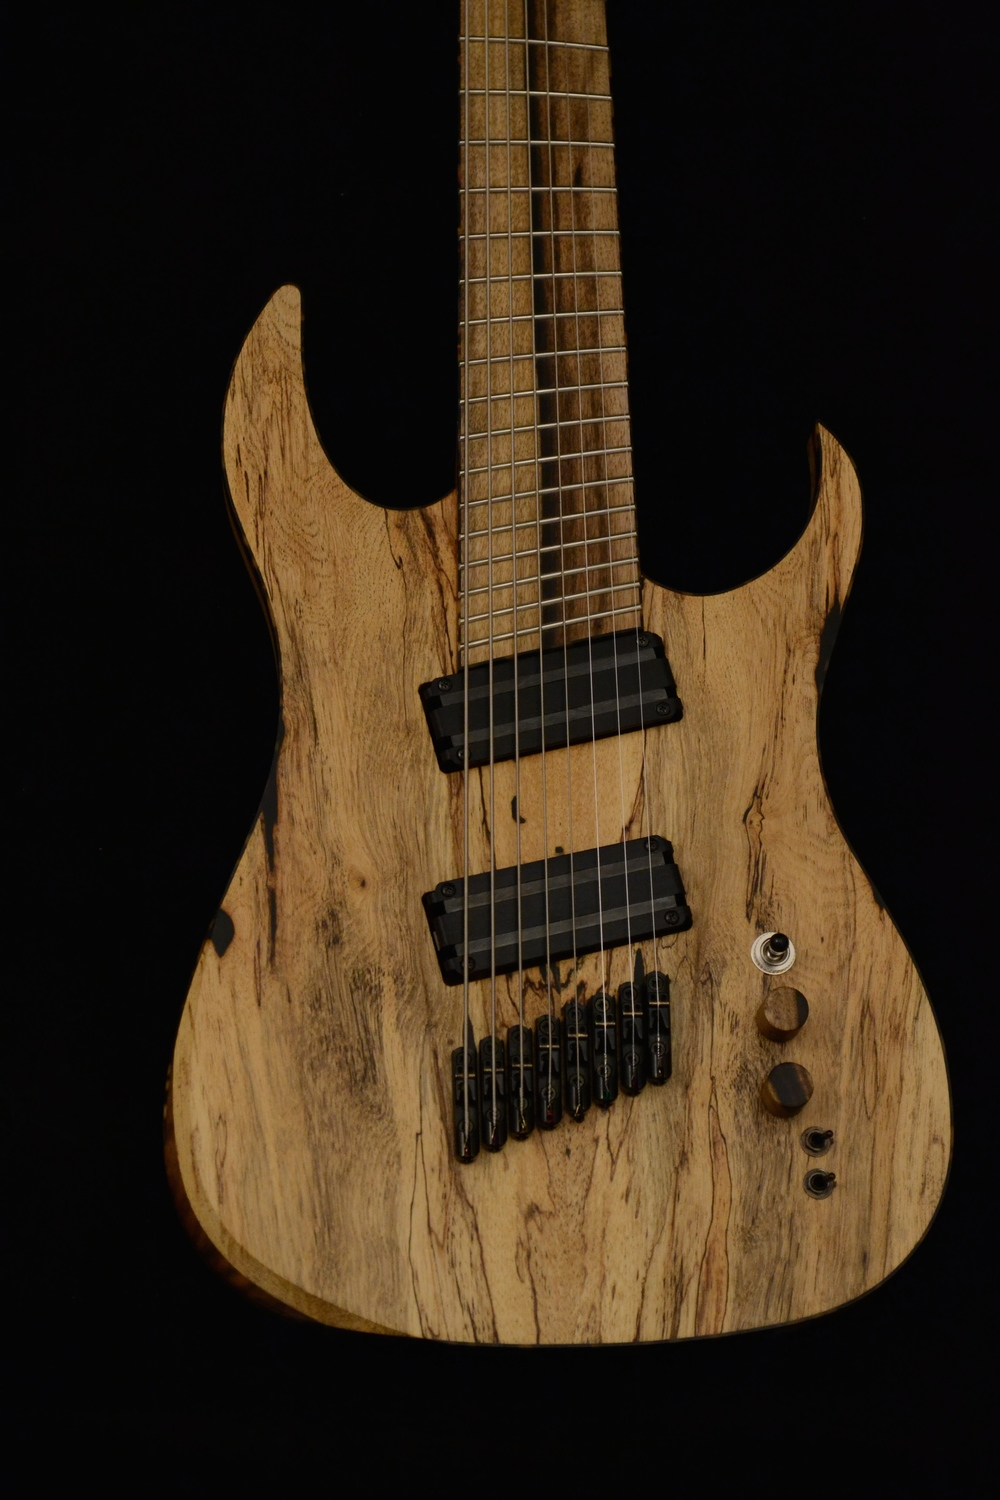 8 string multiscale tulsa up close